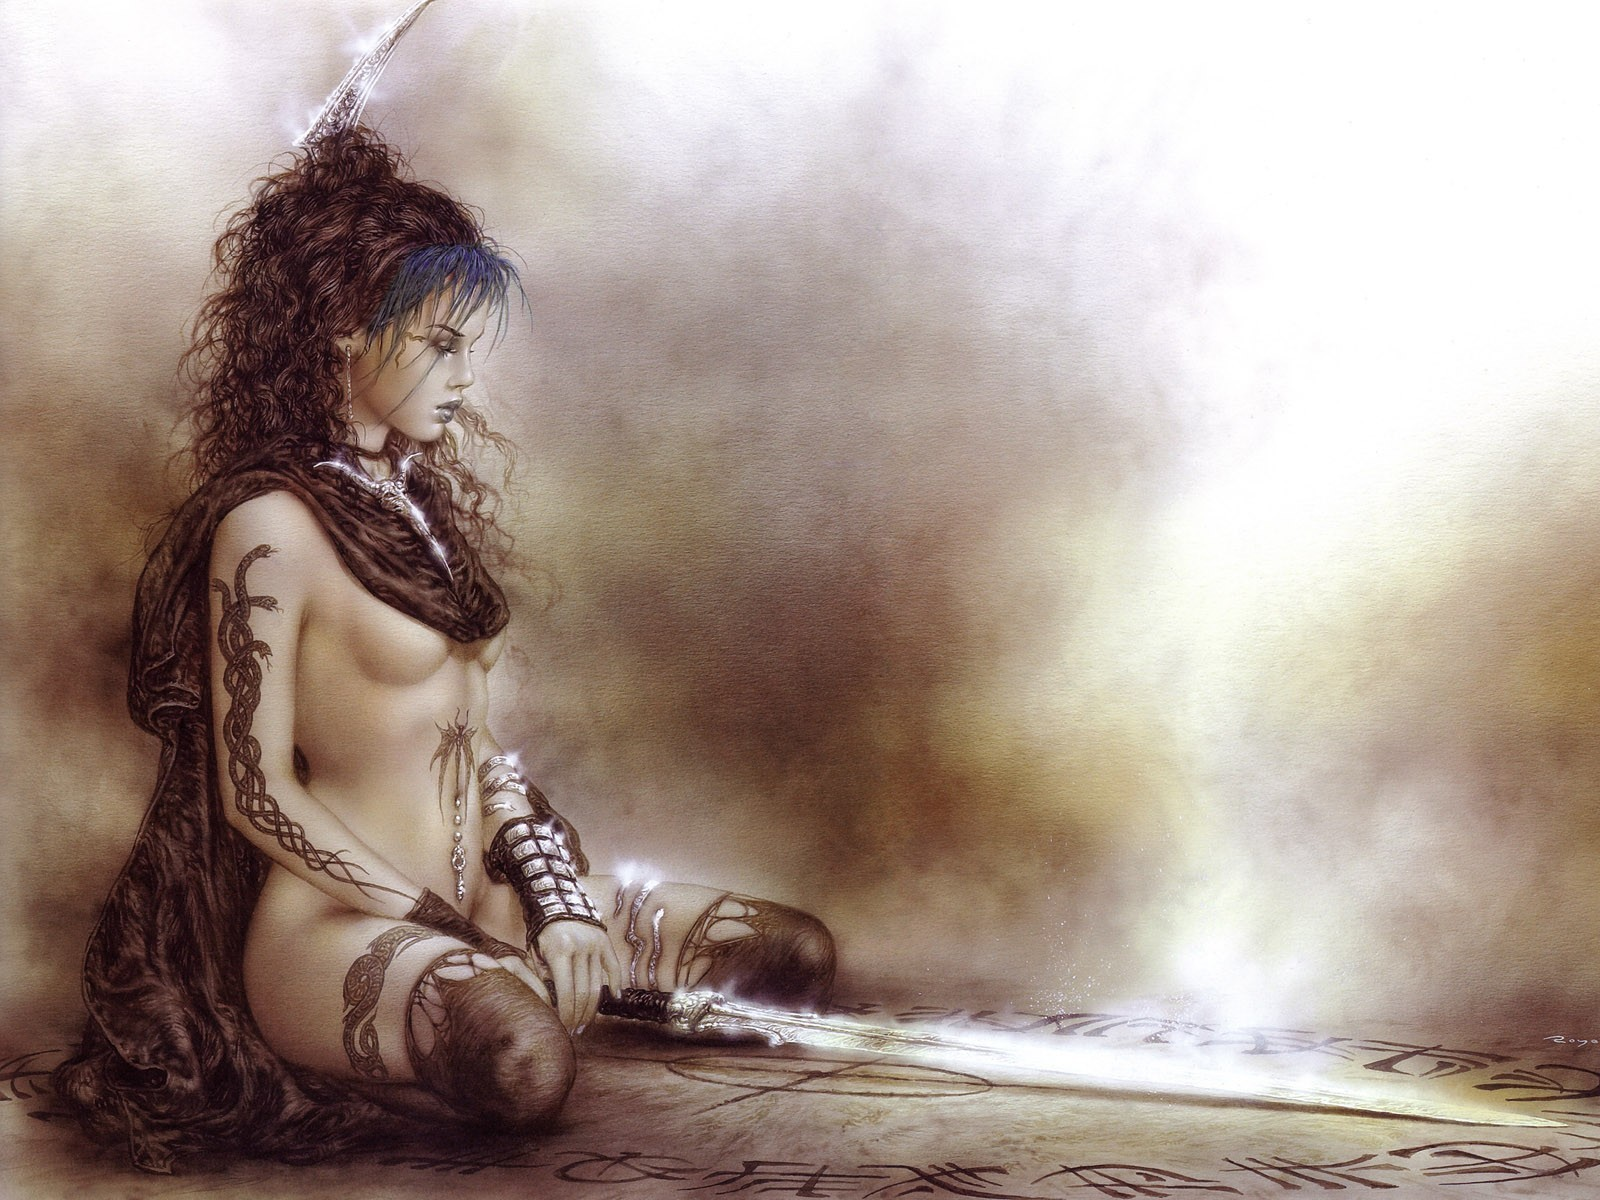 luis royo artwork